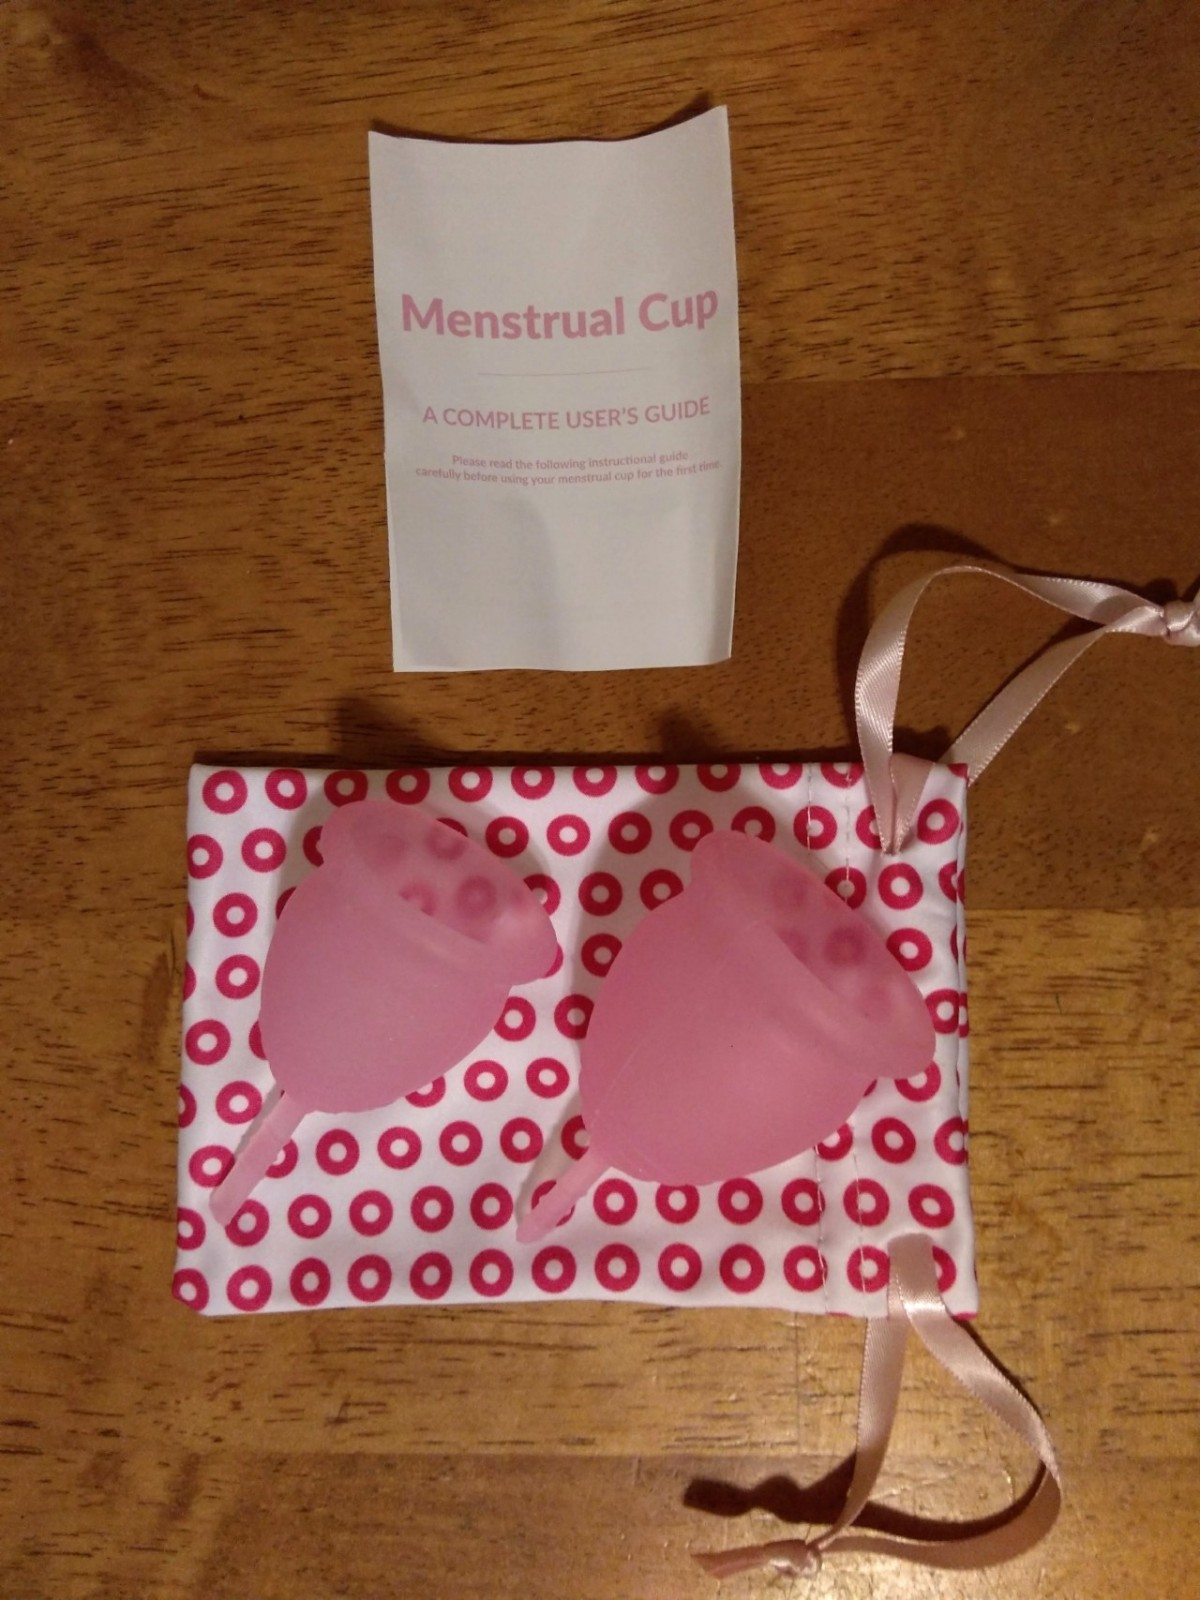 My Experience Using a MenstrualCup